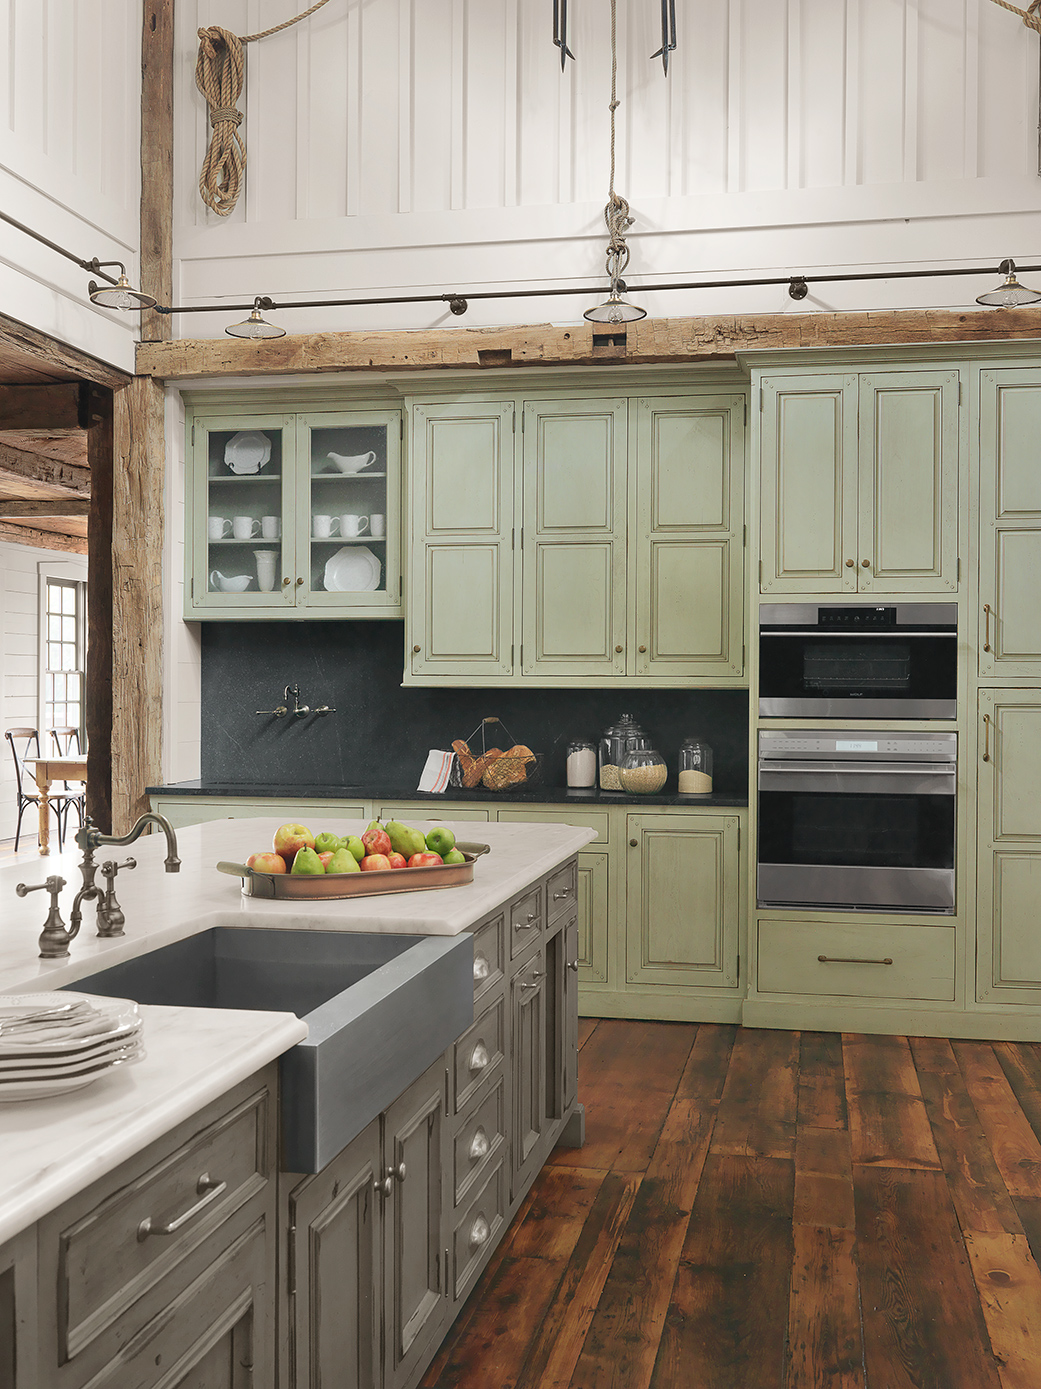 Cabinetry - Select from our 11 lines of custom and semi-custom cabinet lines to find the style, finish, and accessories that are perfect for your home.